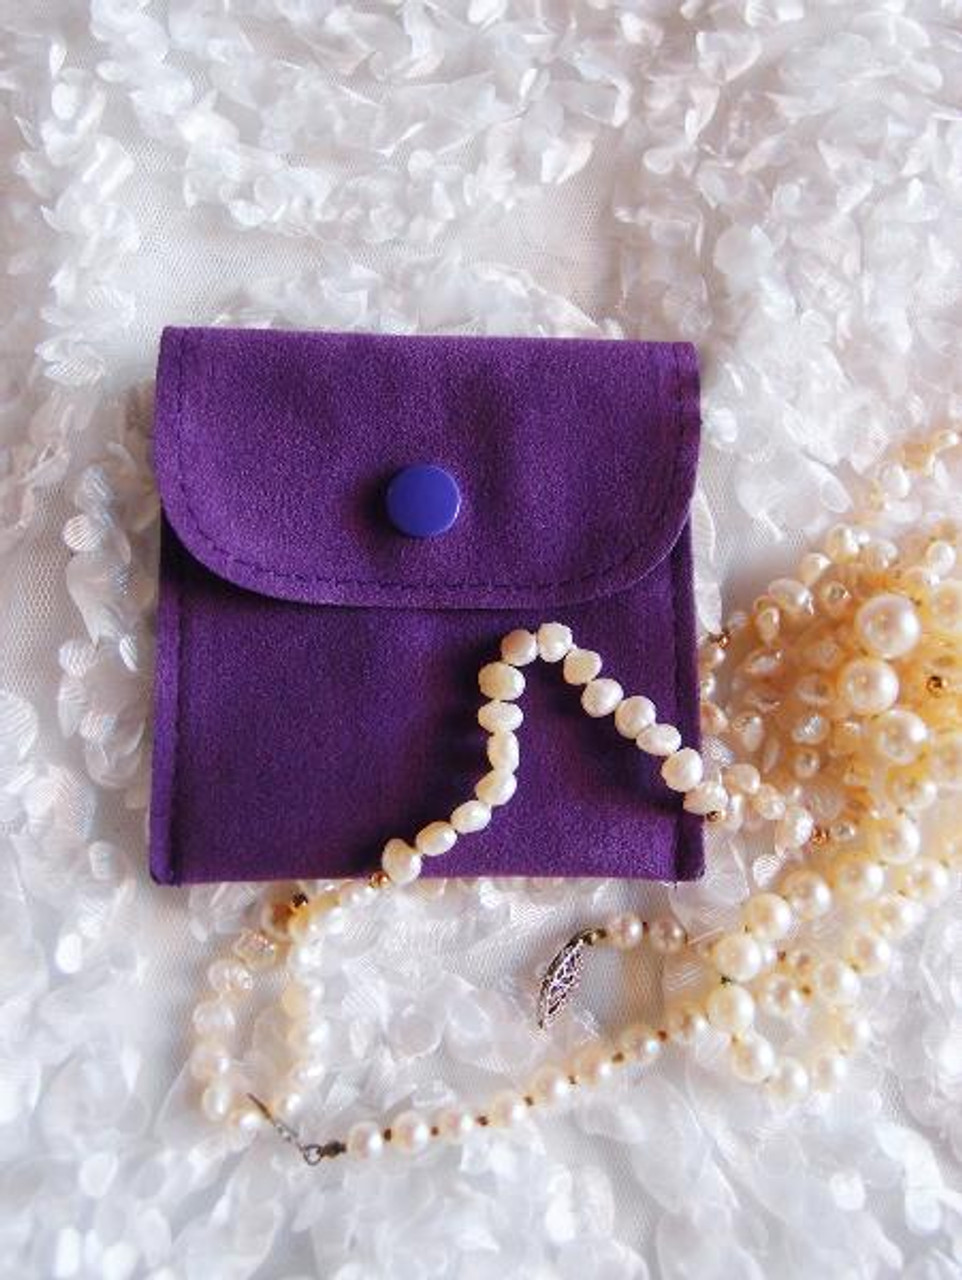 Wholesale Velvet Jewelry Bags, Purple Velvet Jewelry Pouch with Snap Fastener 3 x 3 inches J134-26 | Packaging Decor